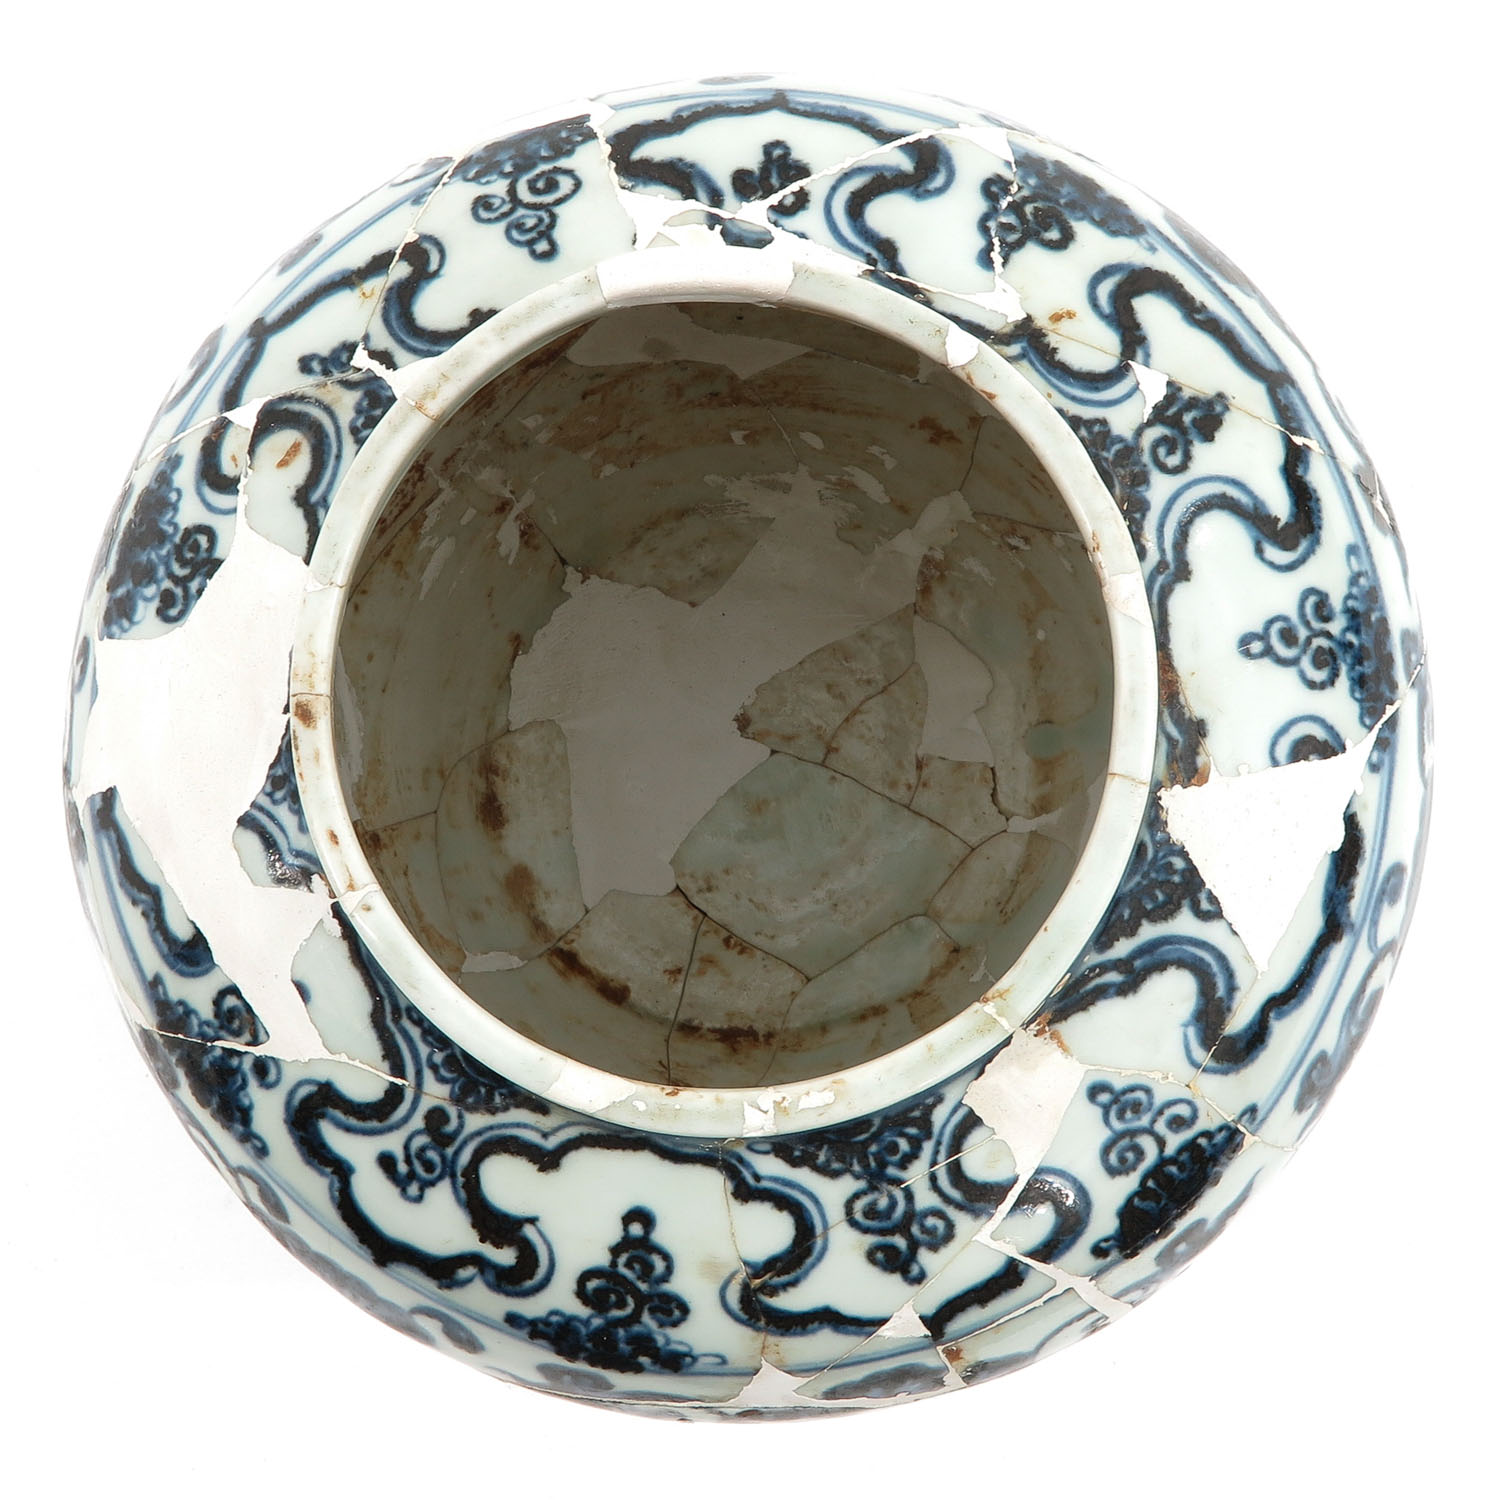 A Blue and White Vase - Image 5 of 10